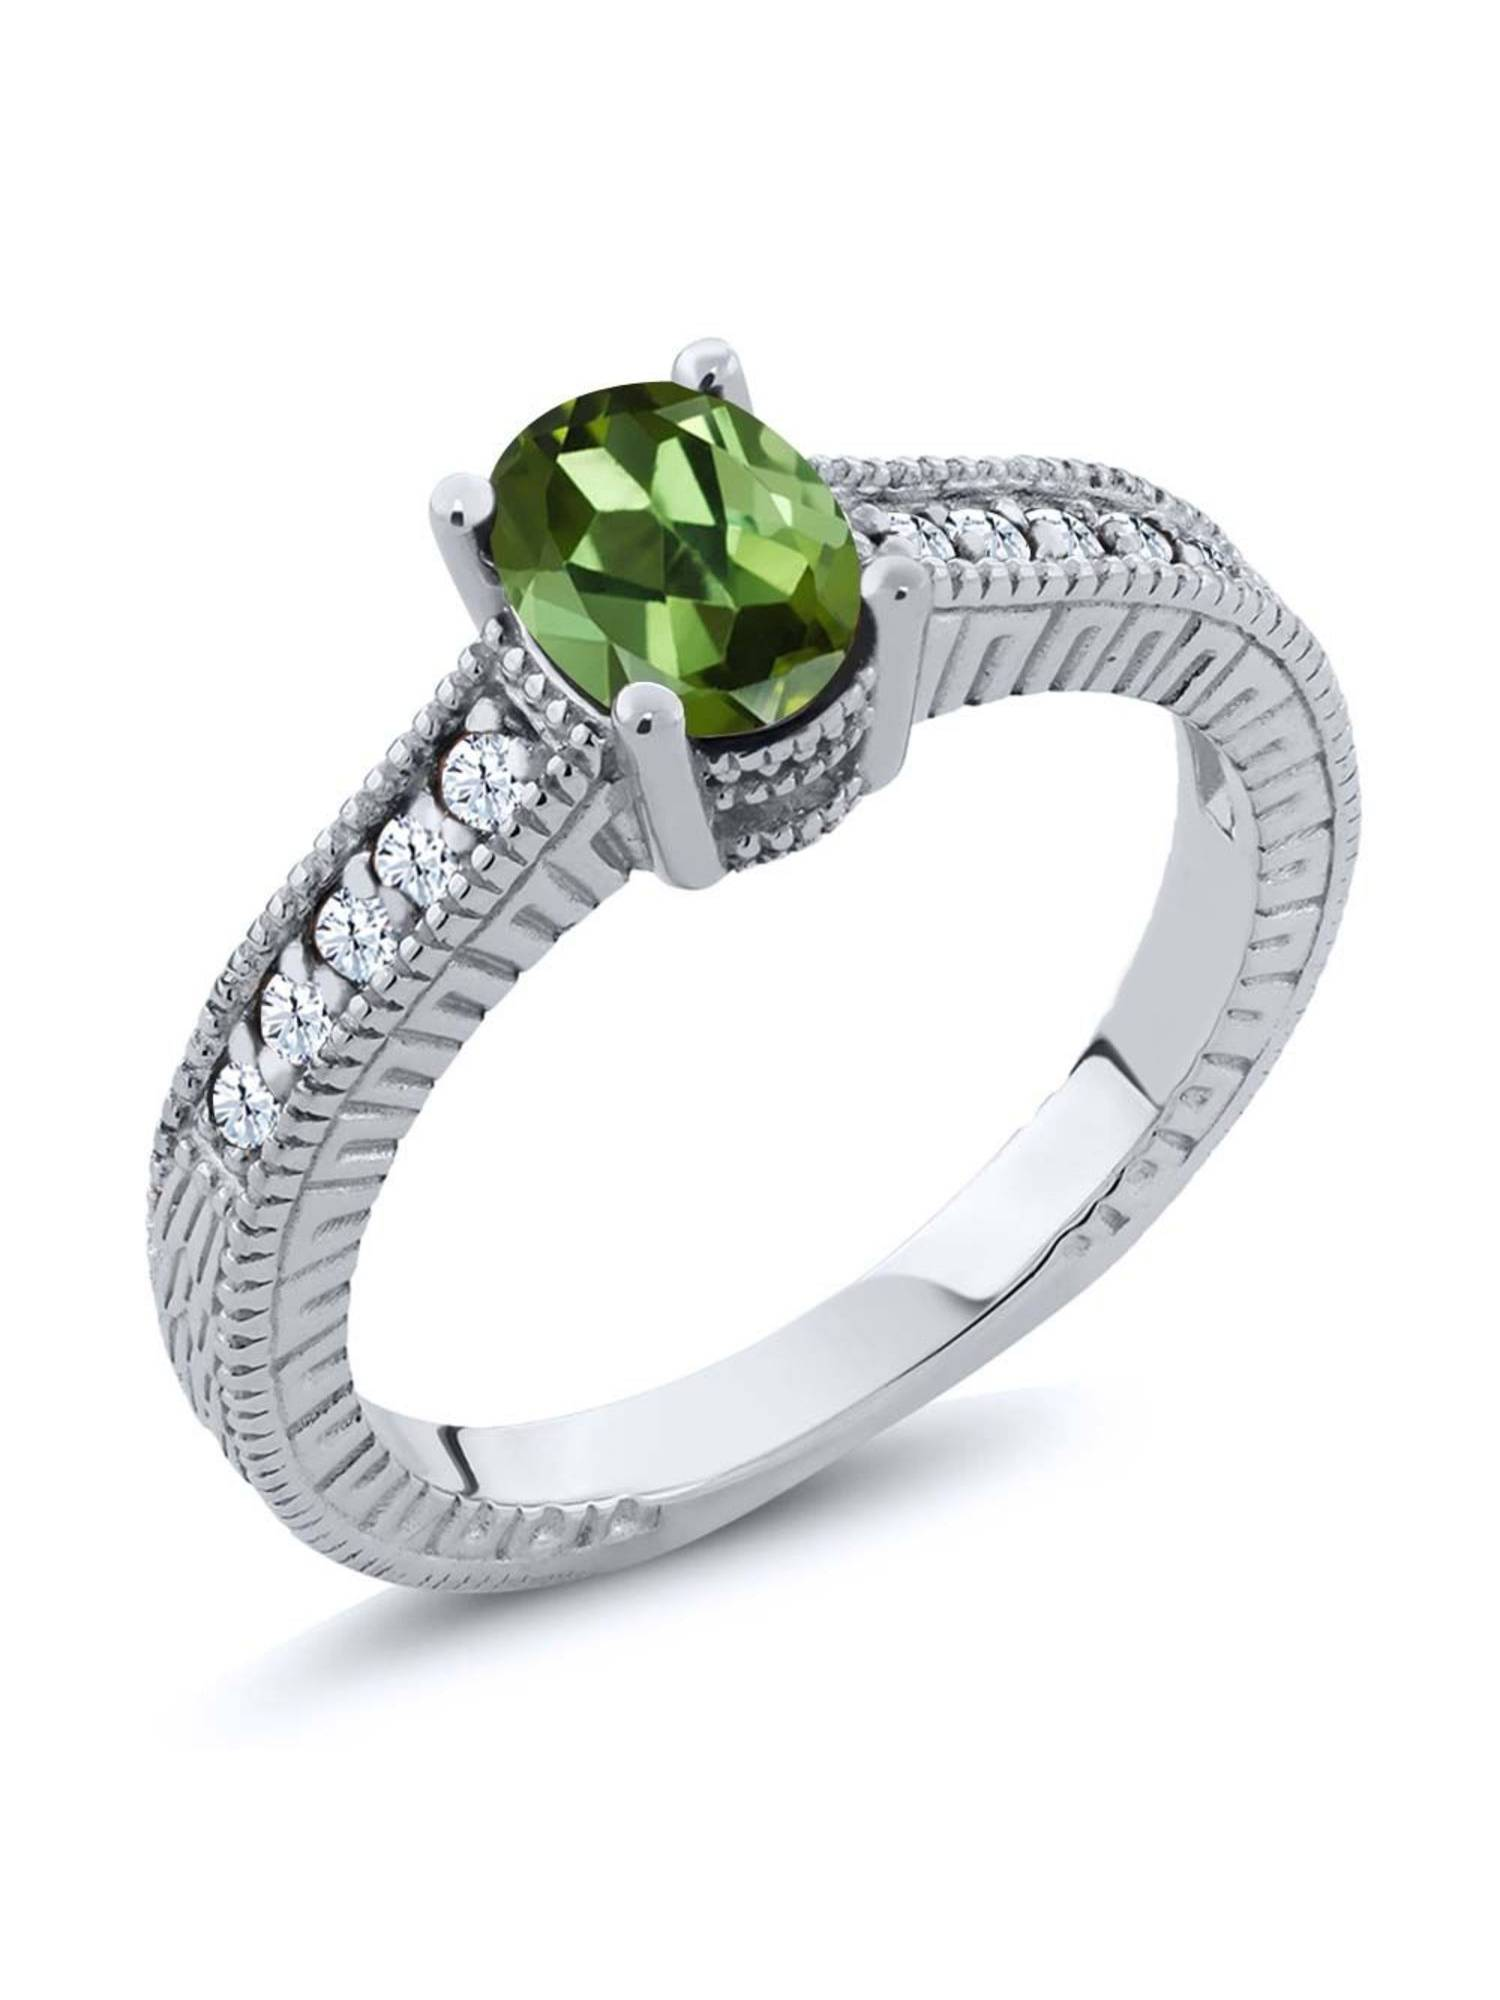 1.25 Ct Oval Green Tourmaline White Created Sapphire 925 Sterling Silver Ring by